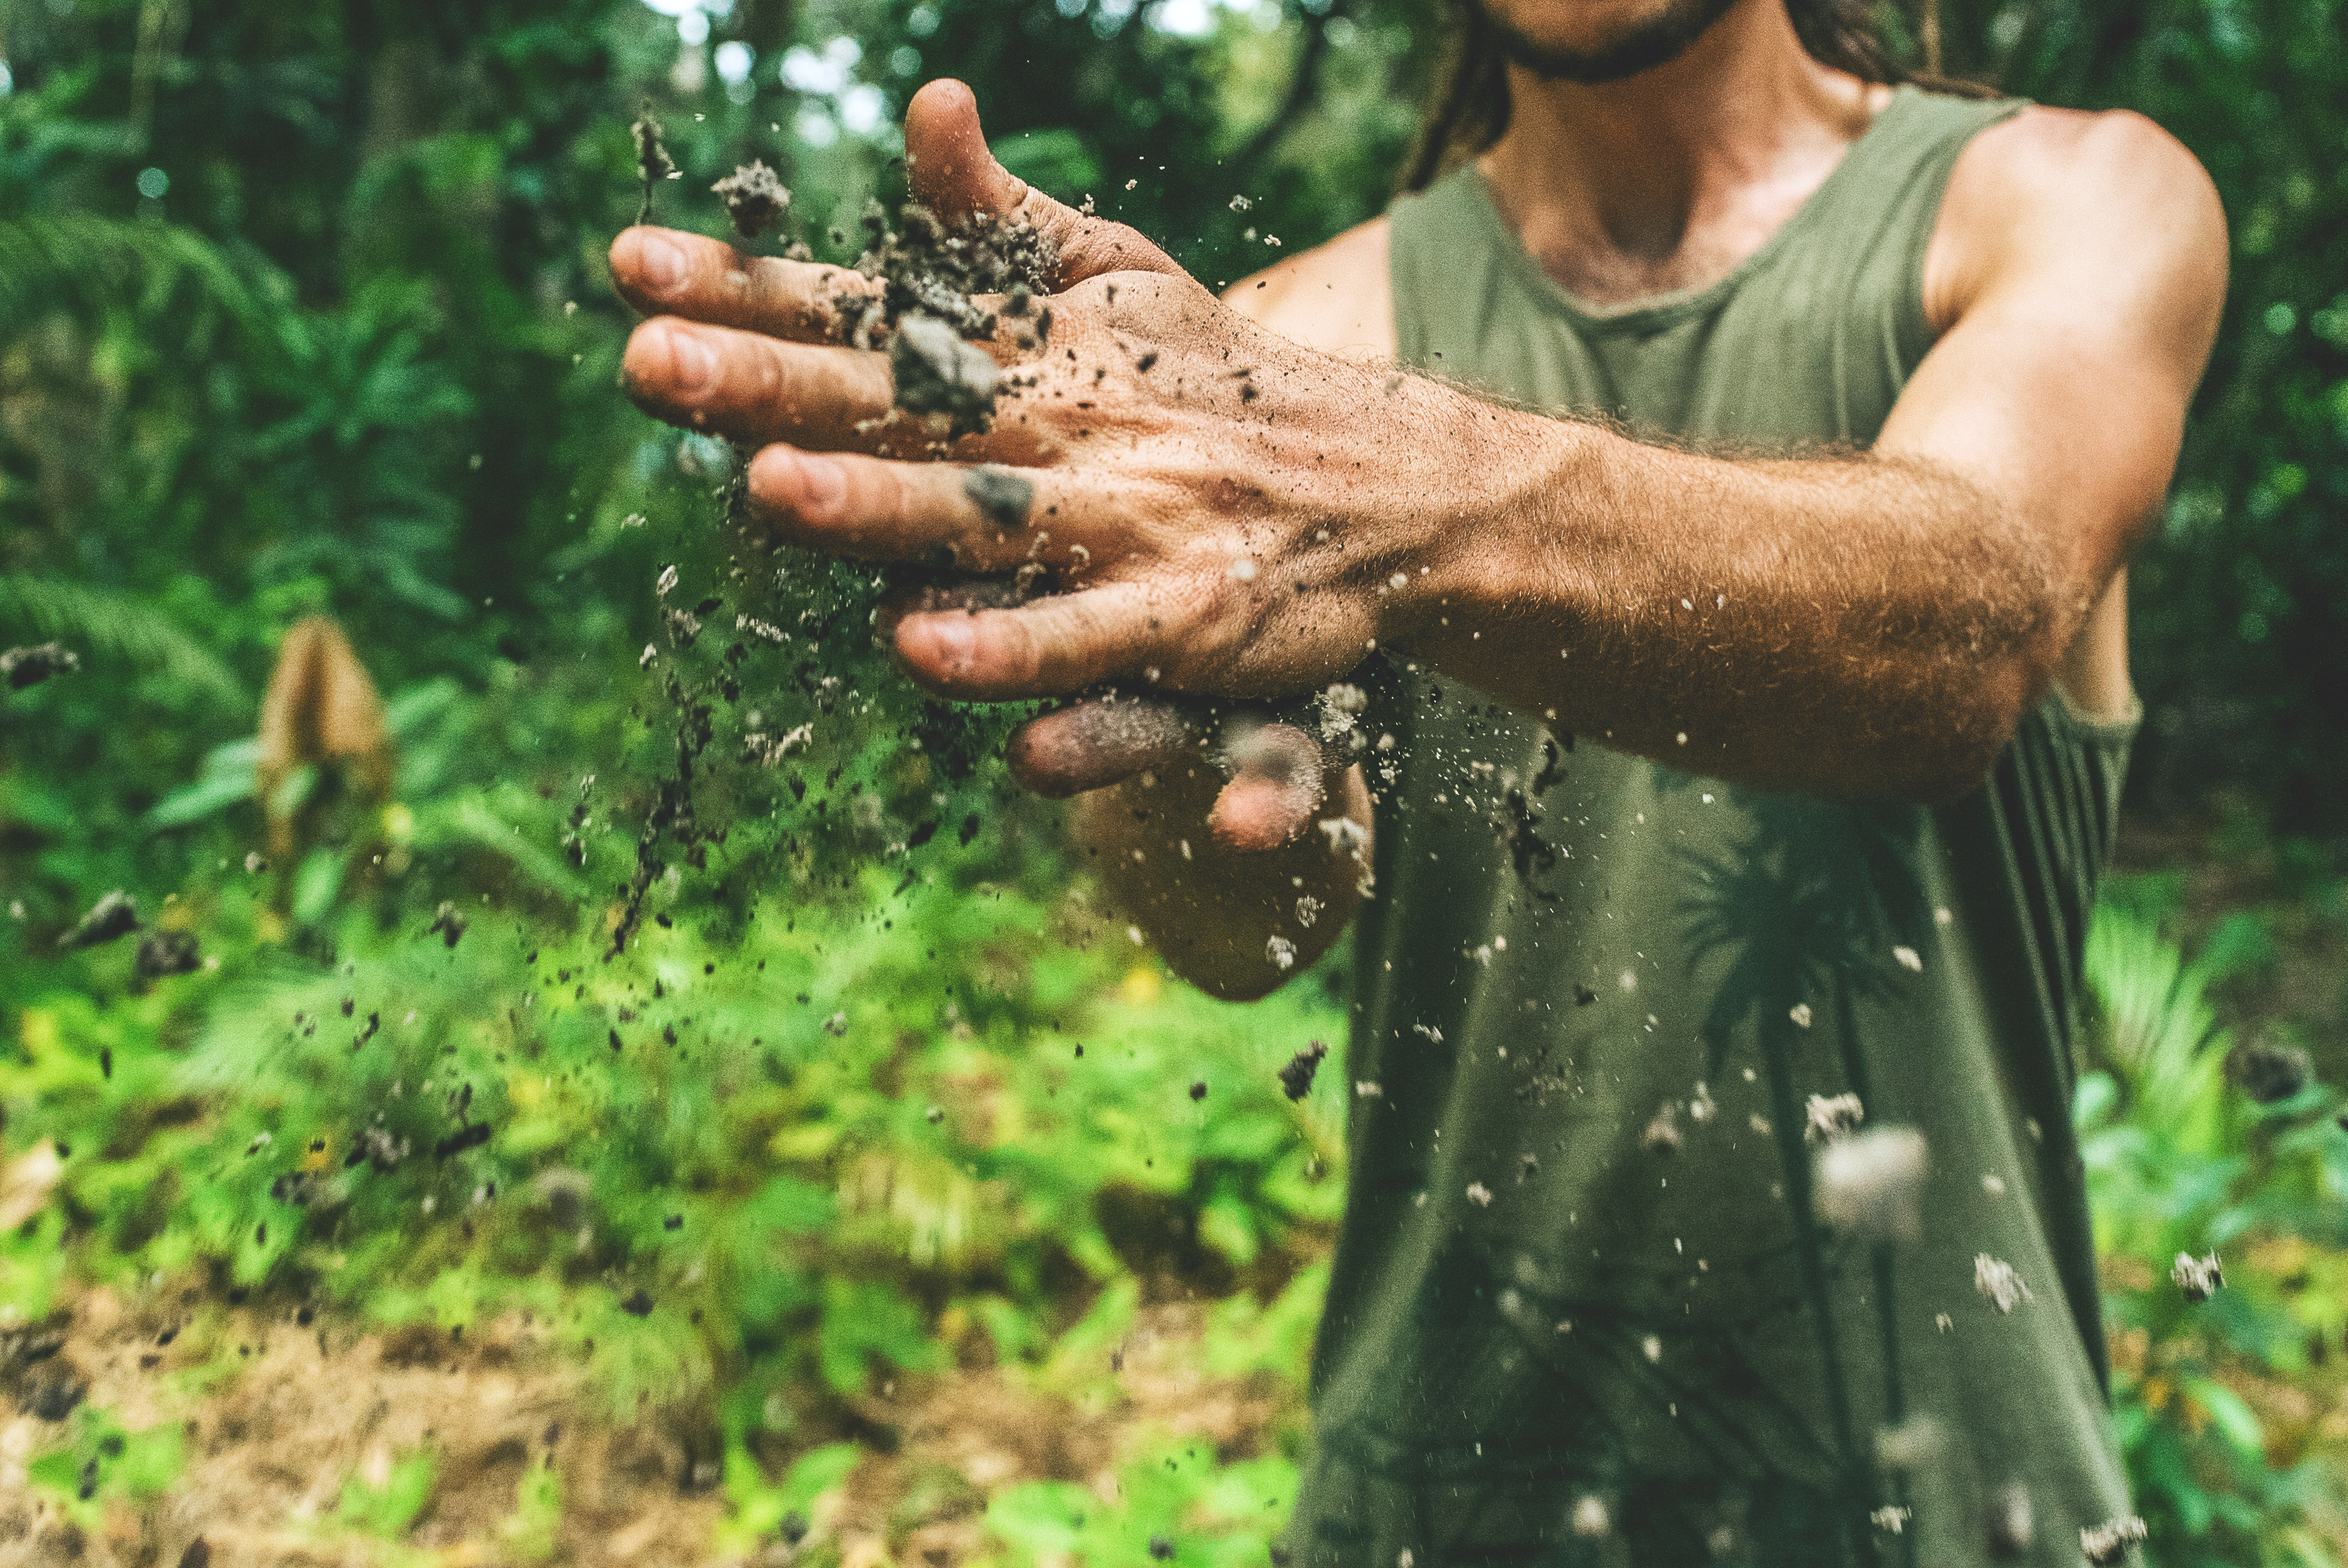 A man wiping dirt off of his hands in the jungle